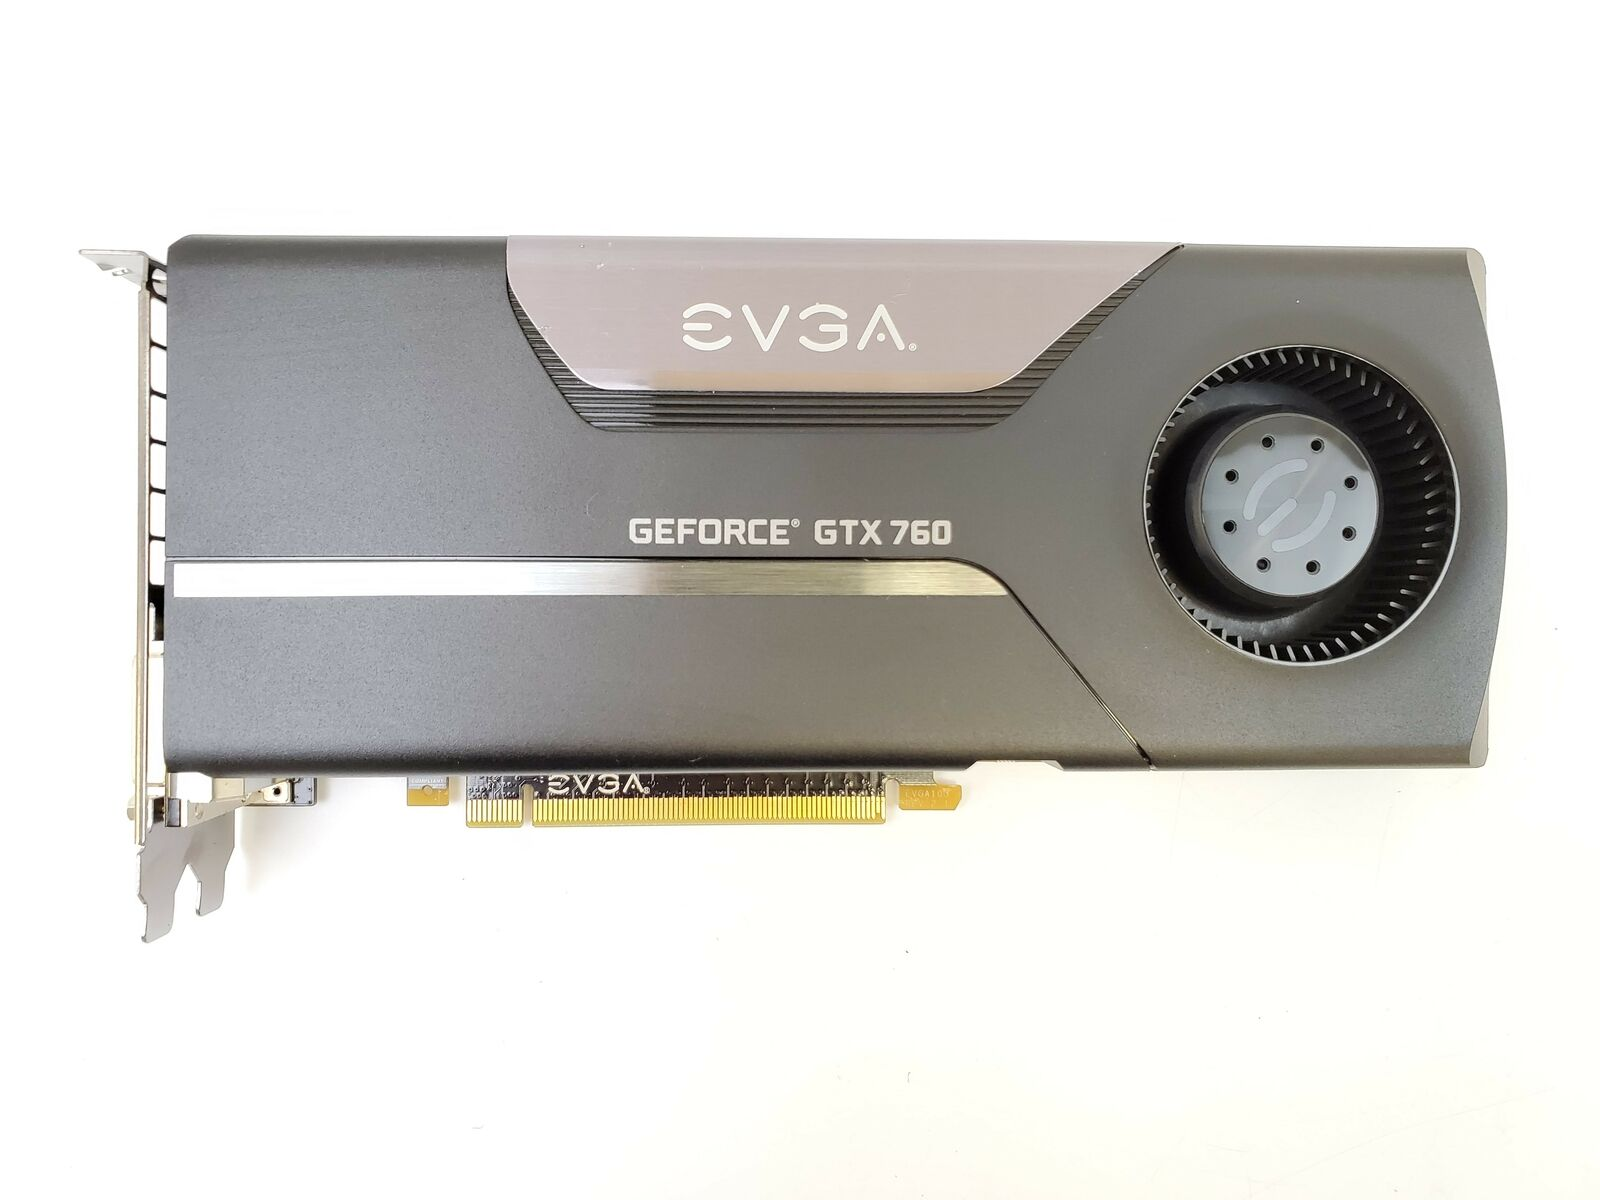 EVGA GeForce GTX 760 2GB DisplayPort HDMI 2x DVI PCI-e x16 Video Graphics Card 2